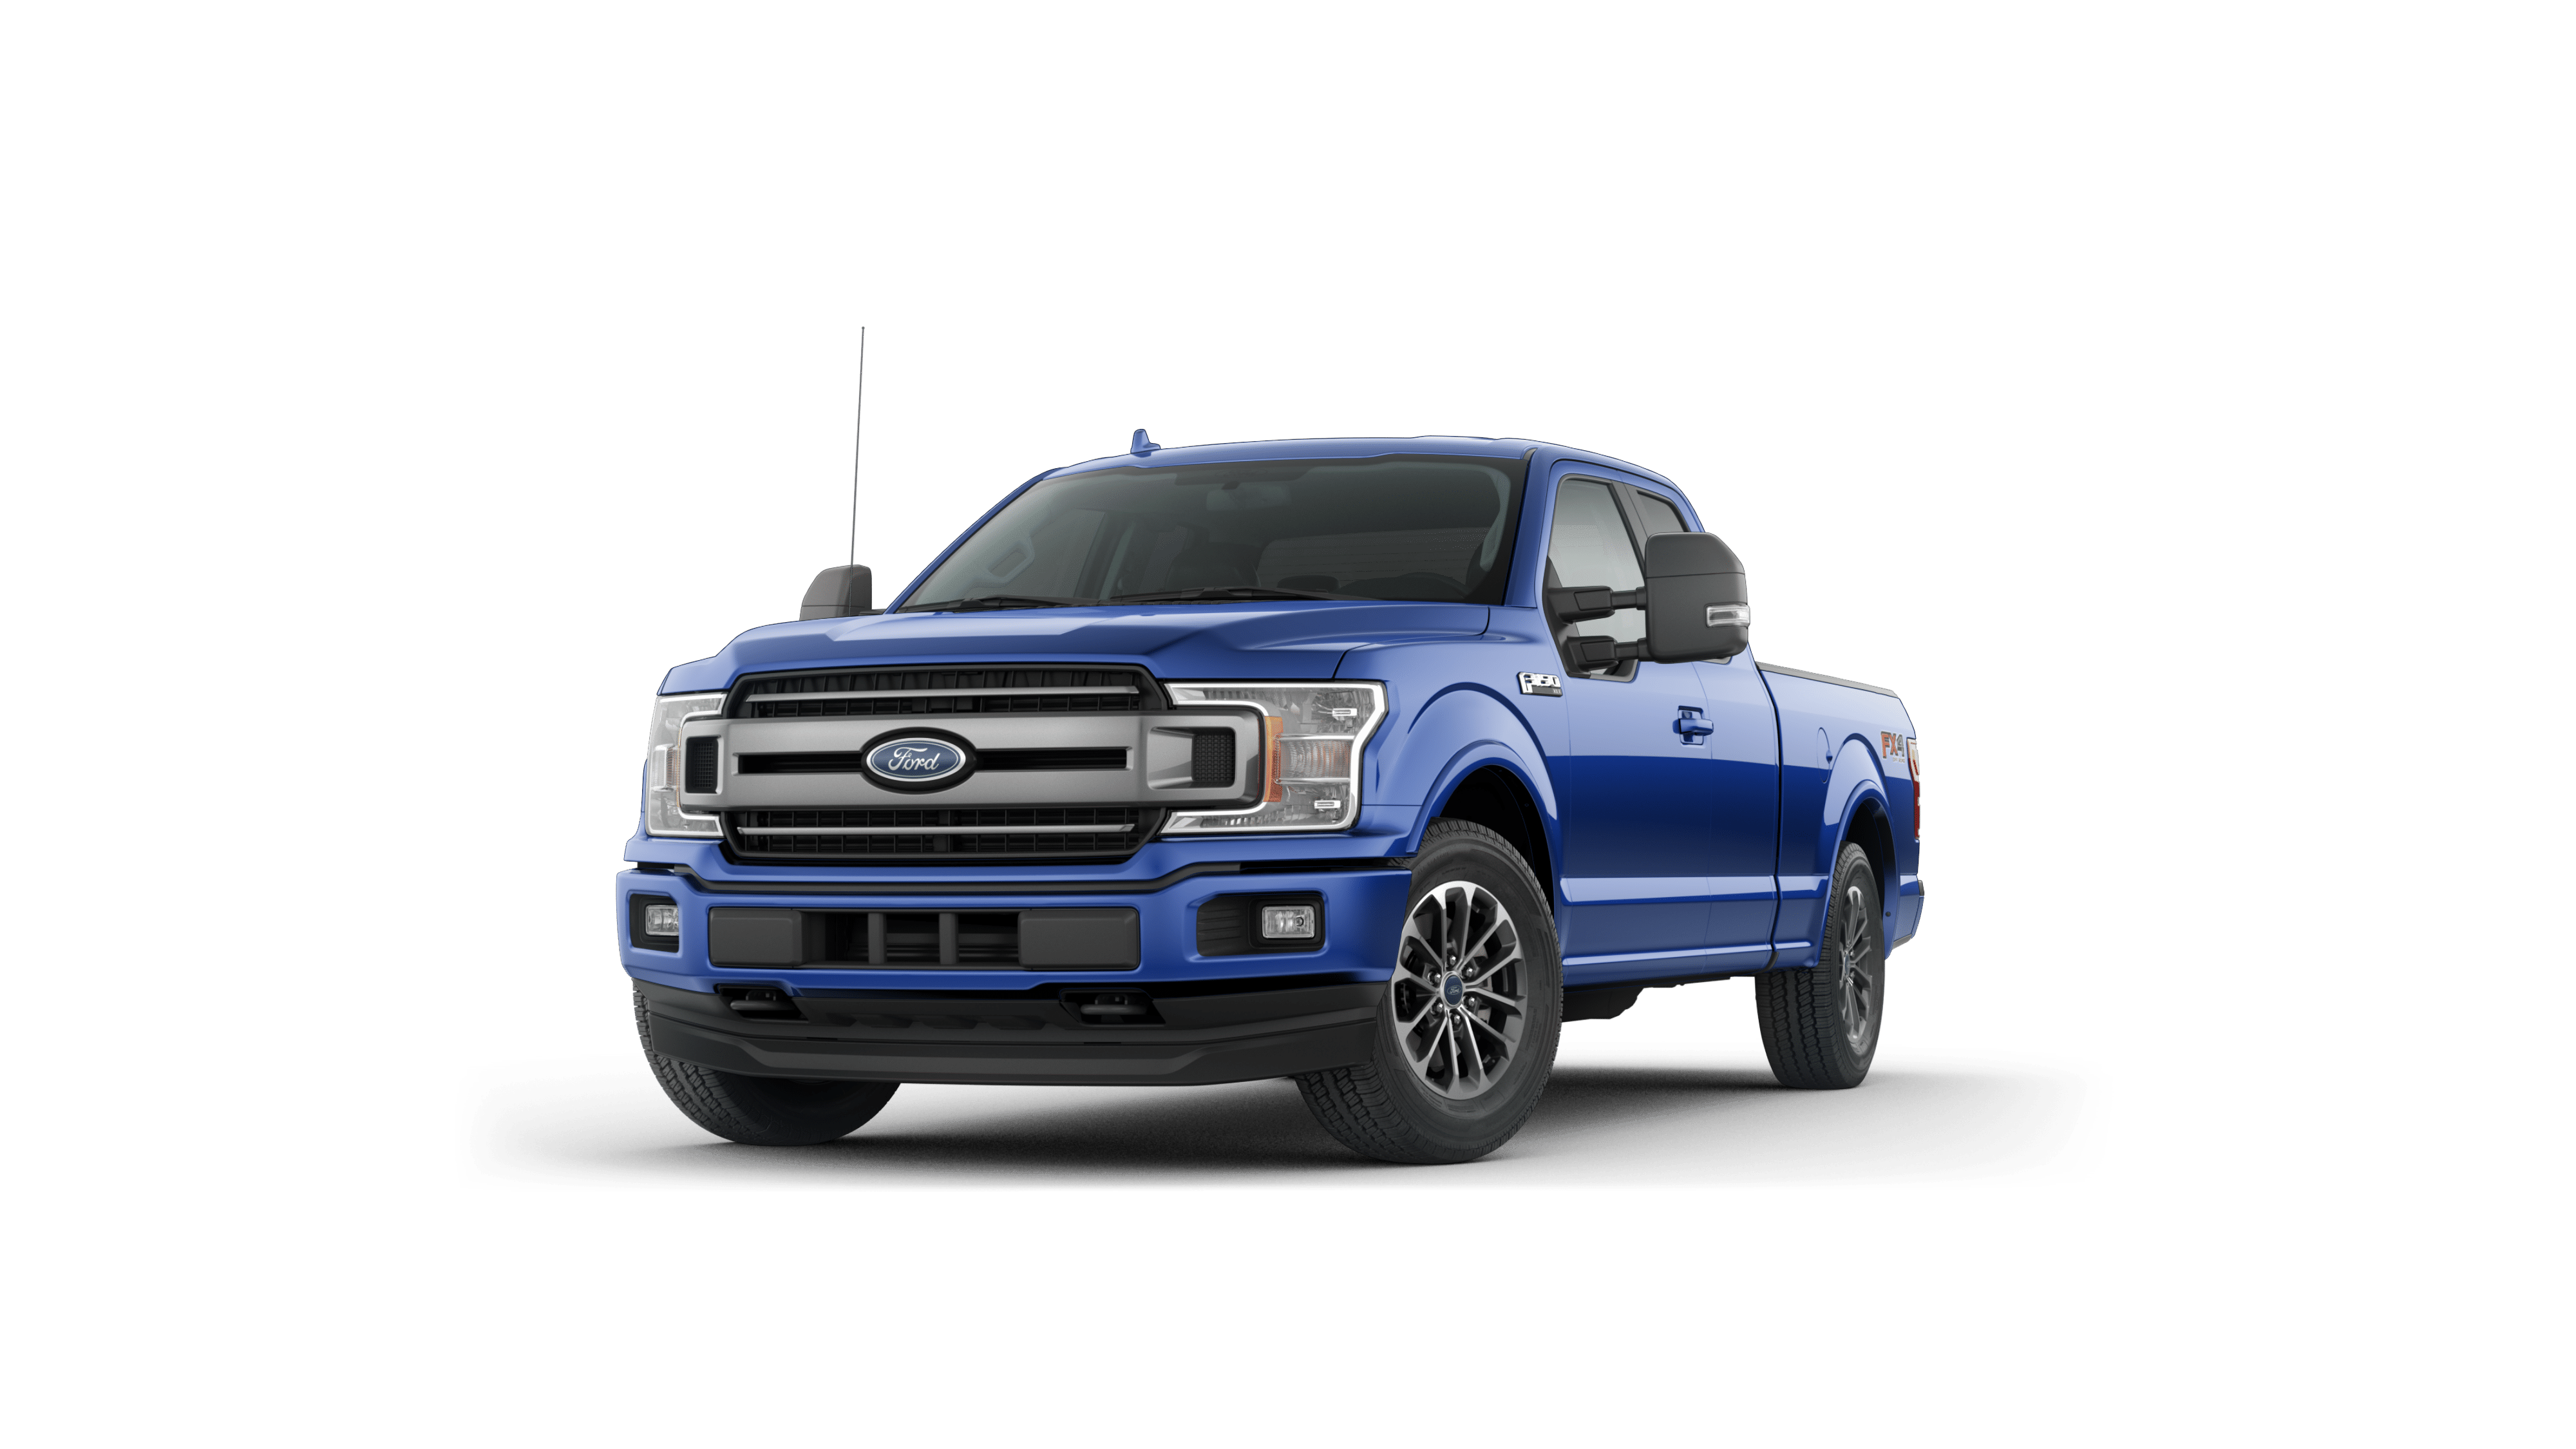 Kieffe And Sons Ford >> Kieffe Sons Ford Is A Ford Dealer Selling New And Used Cars In